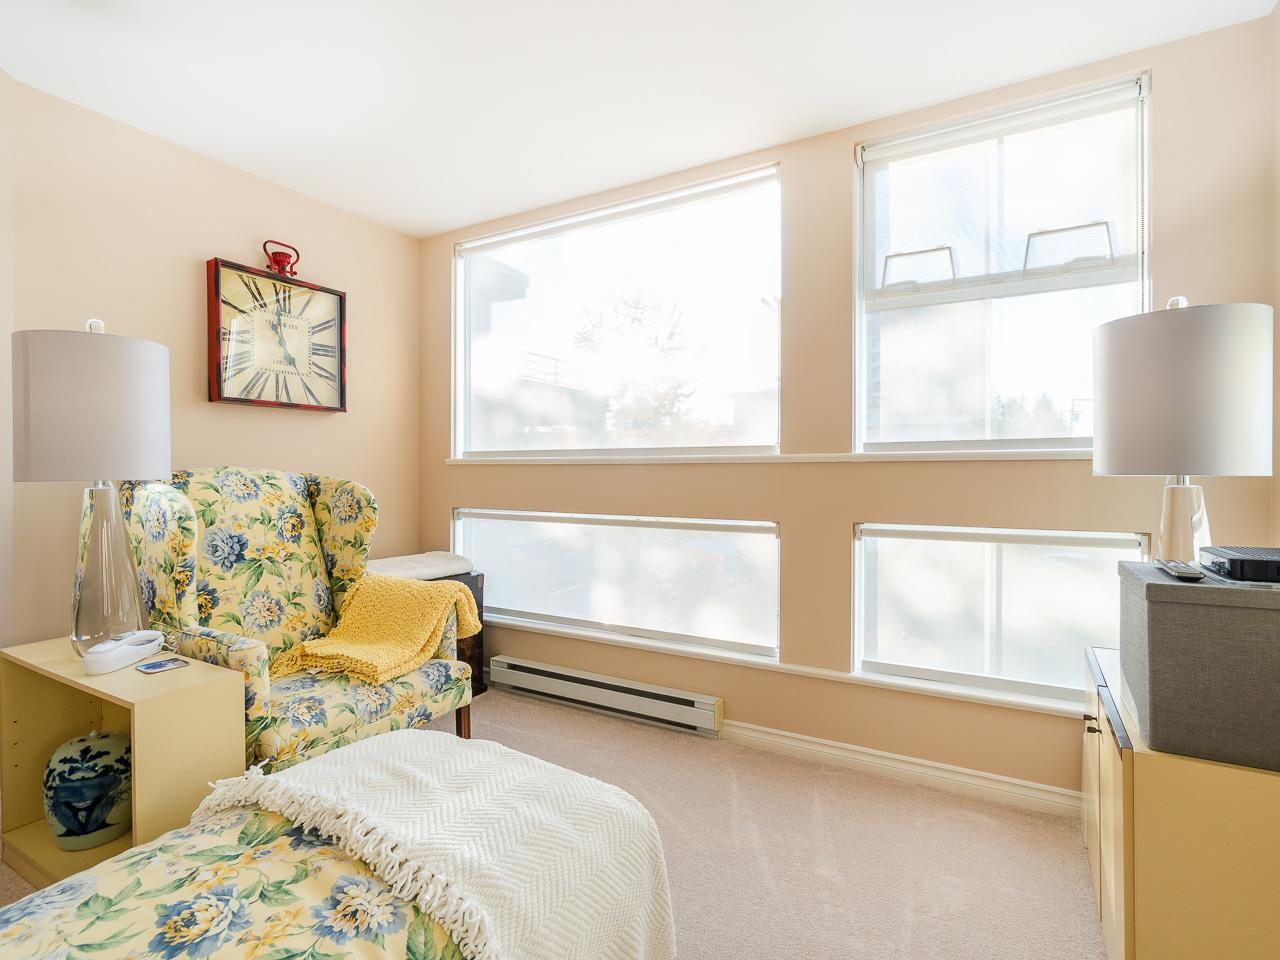 306 2105 W 42ND AVENUE - Kerrisdale Apartment/Condo for sale, 1 Bedroom (R2511504) - #8